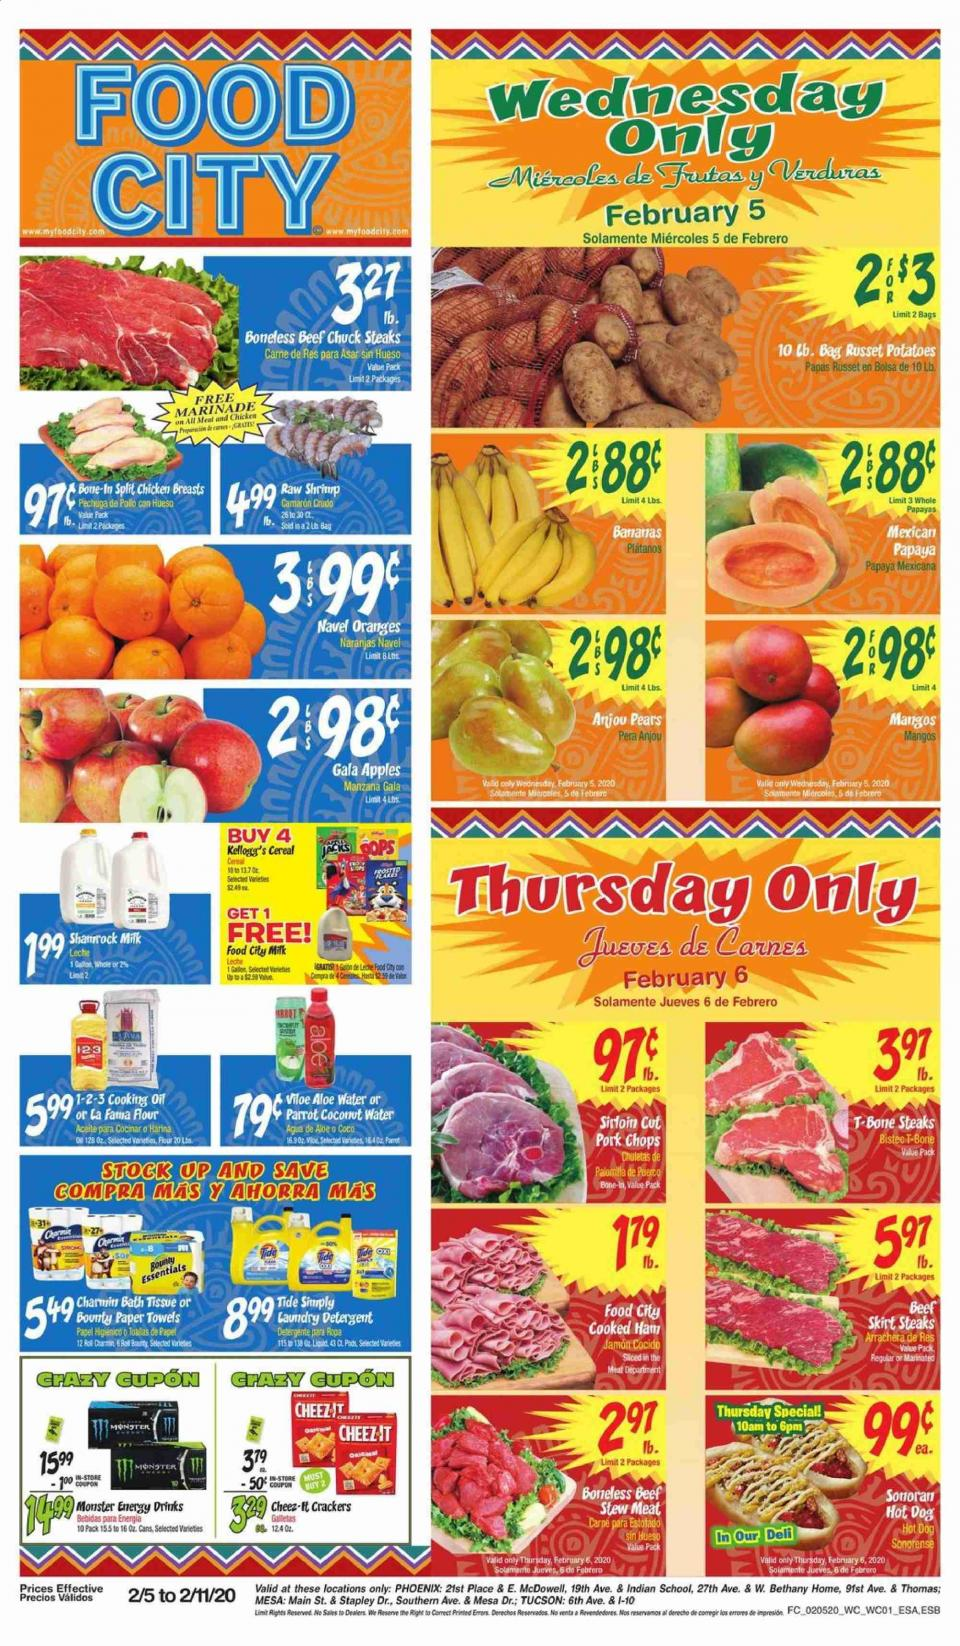 Food City February Ad valid from Feb 5 – 11, 2020.